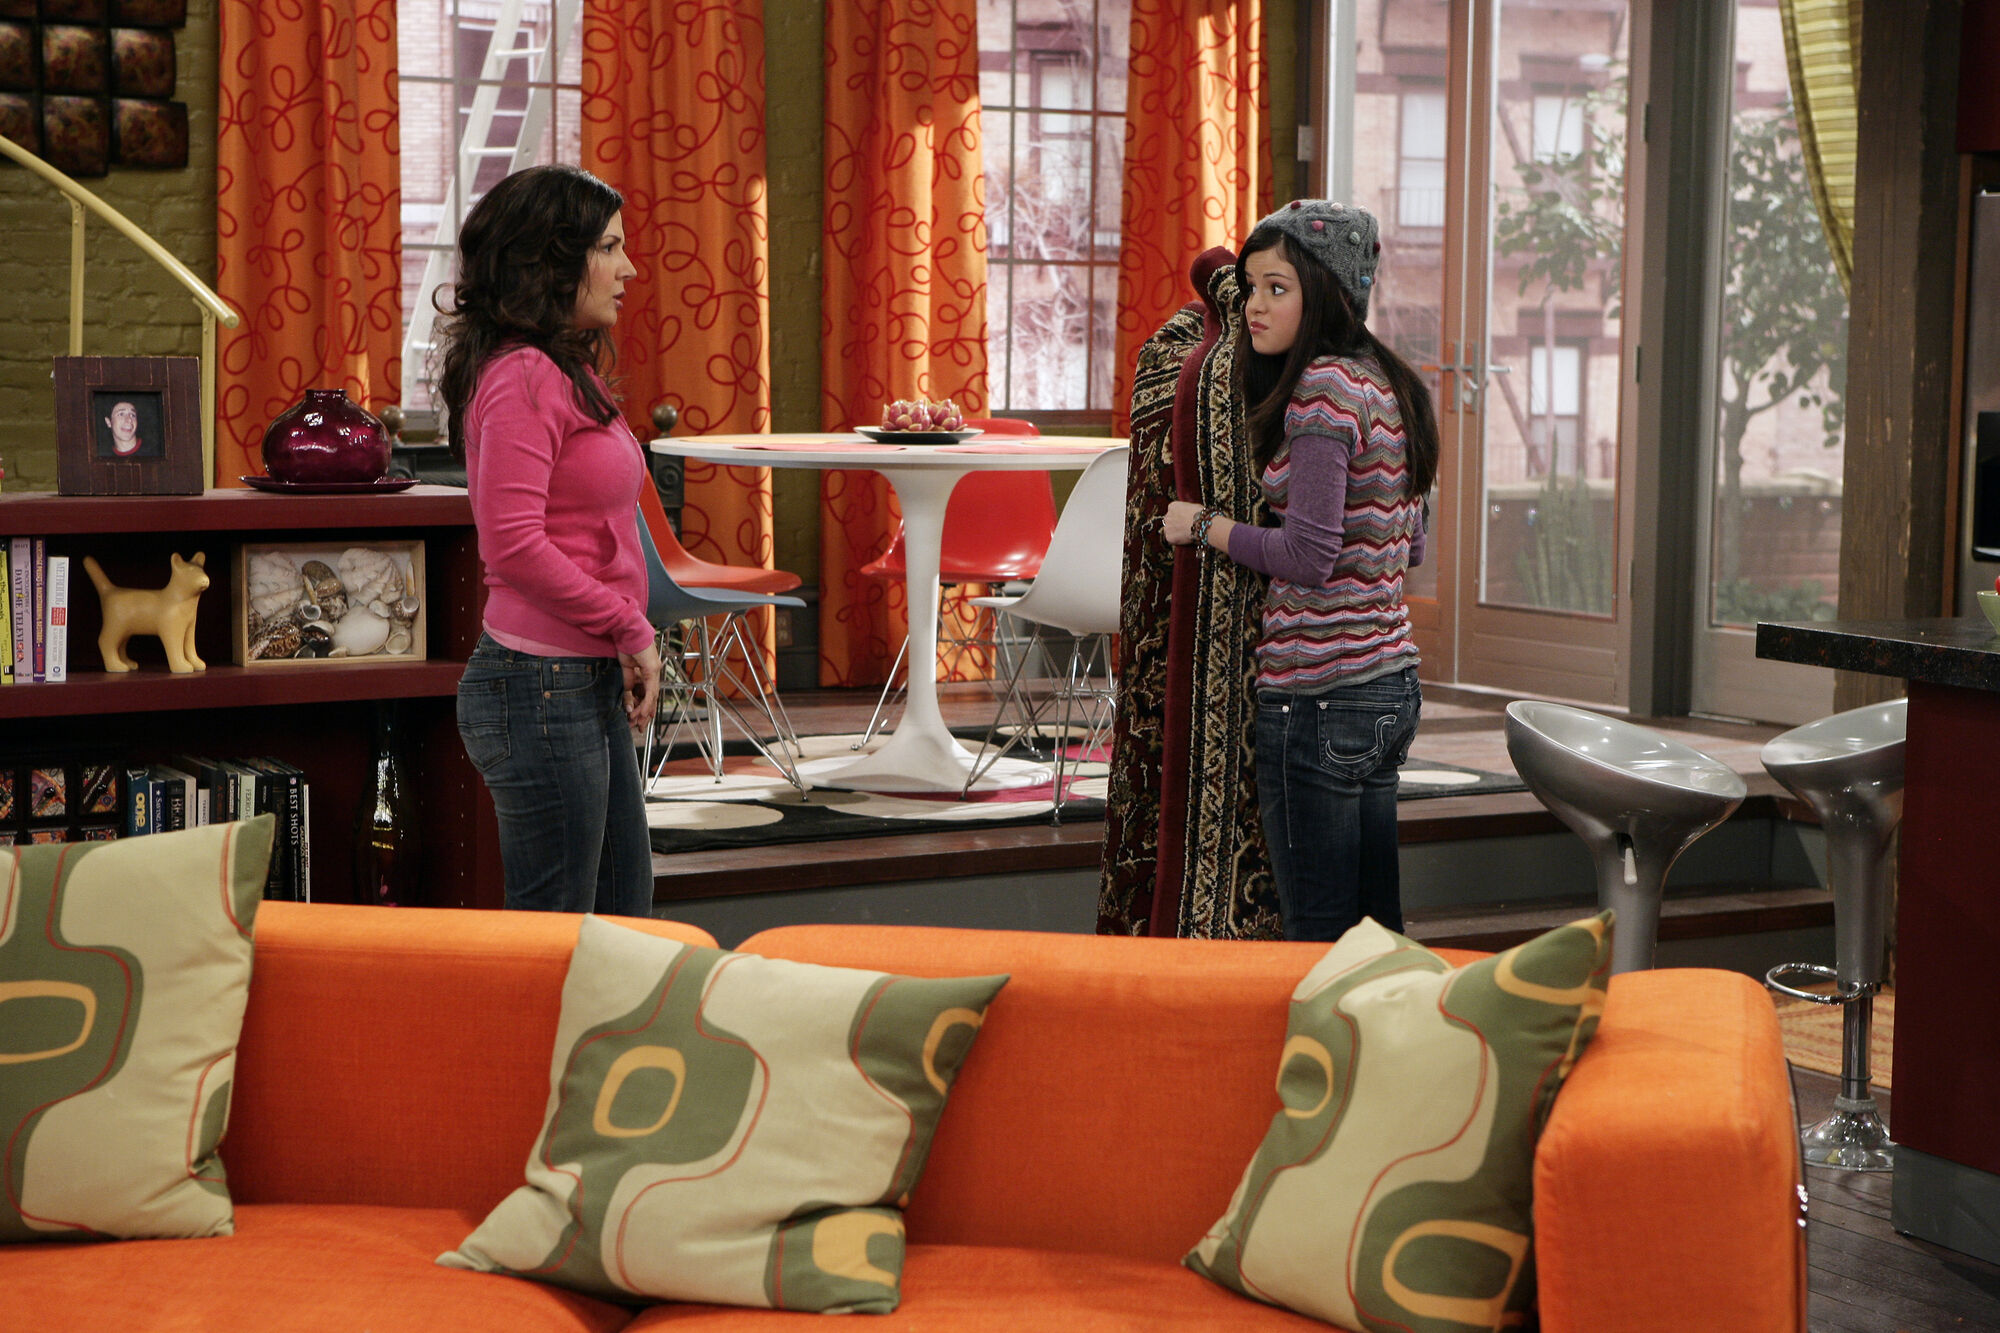 Wizards Of Waverly Place Bedroom